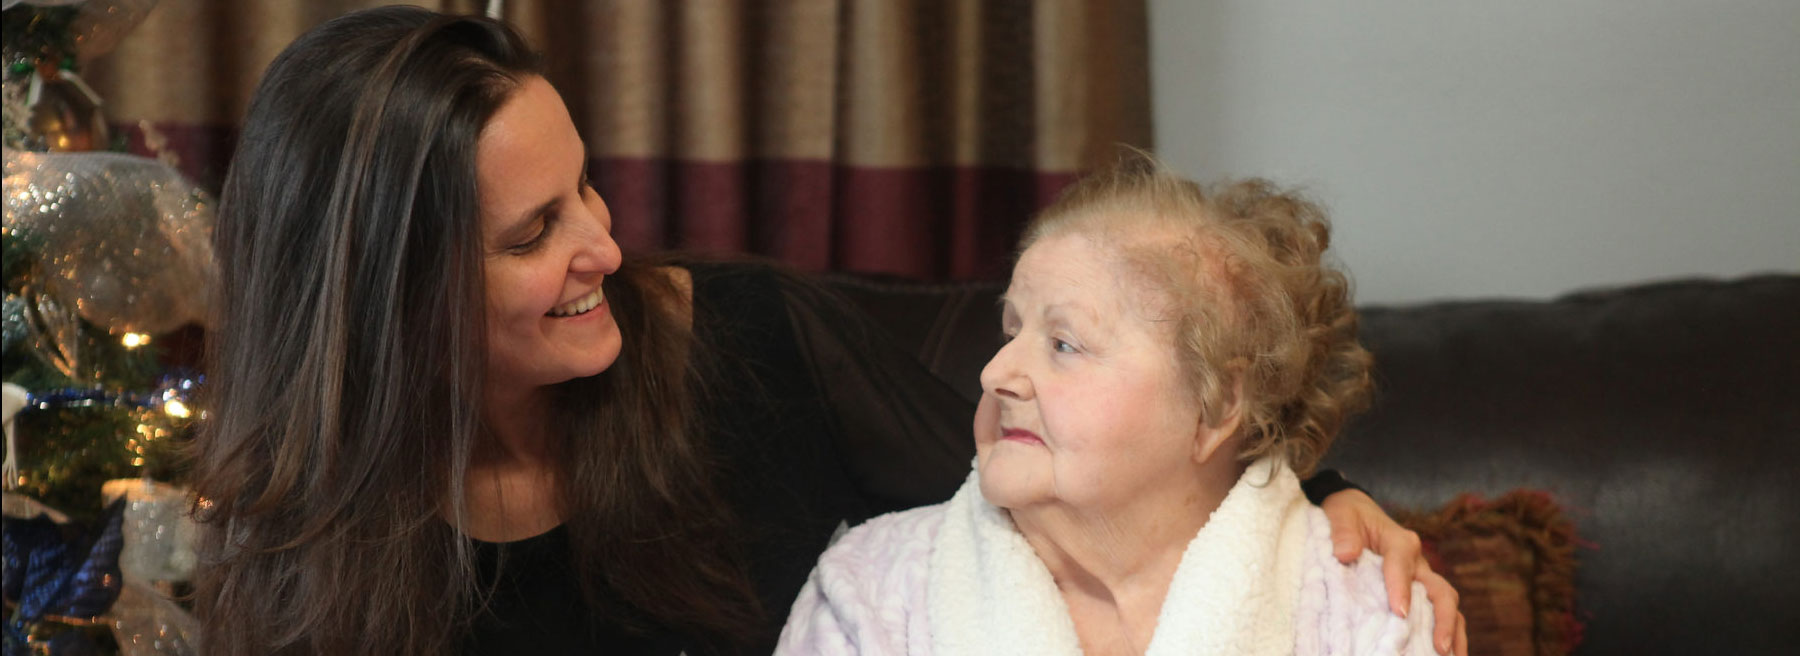 Photo of younger woman caregiver with arms around elderly woman.